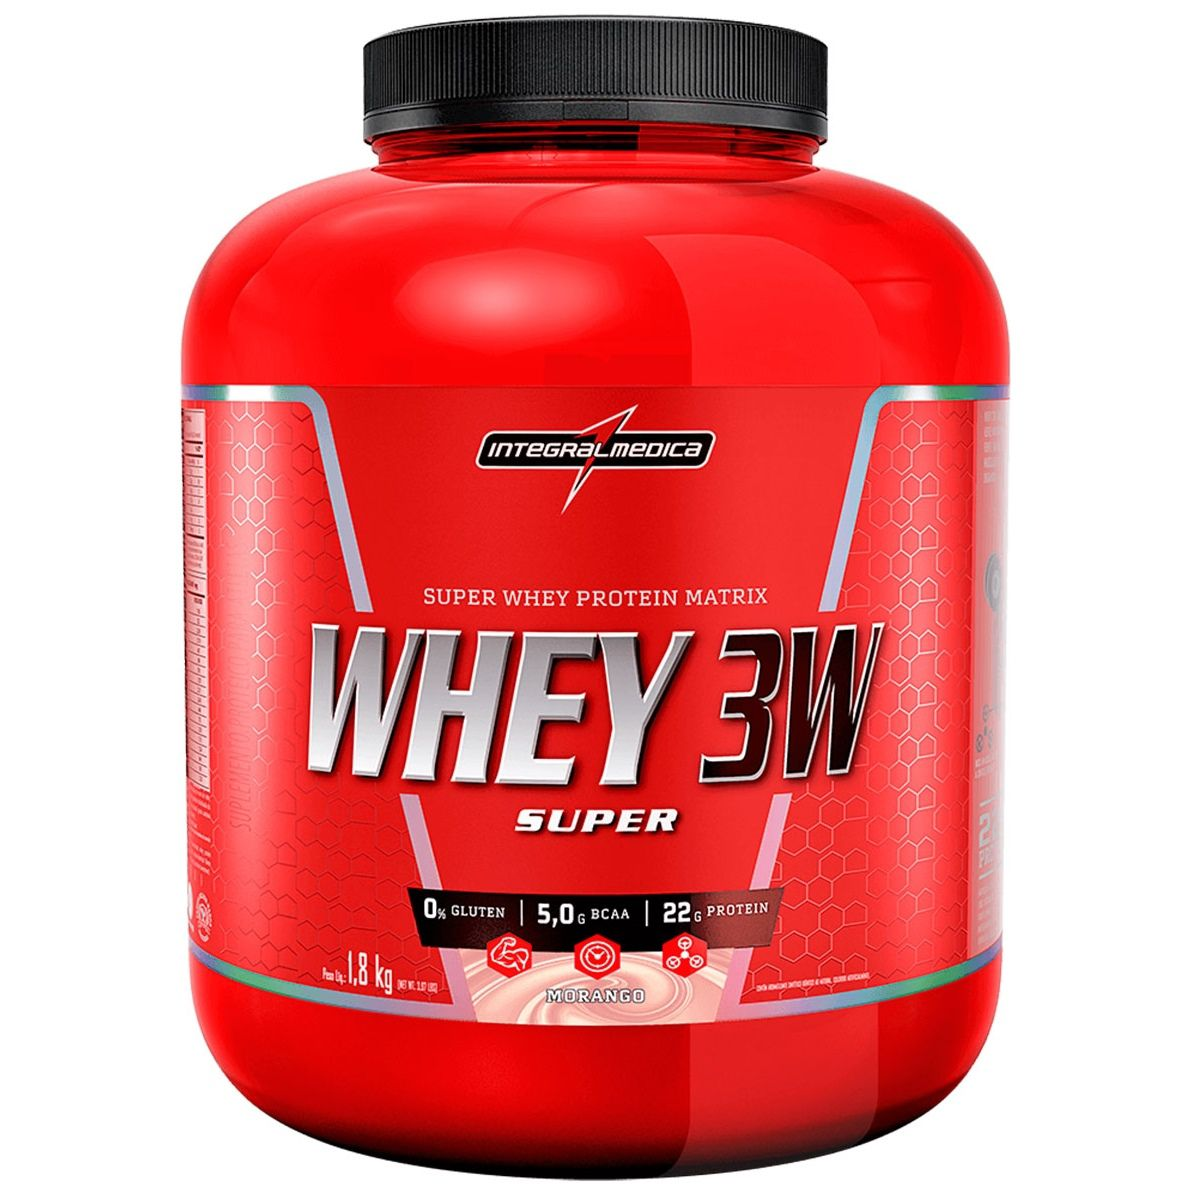 Super Whey 3W 1,8Kg - IntegralMedica